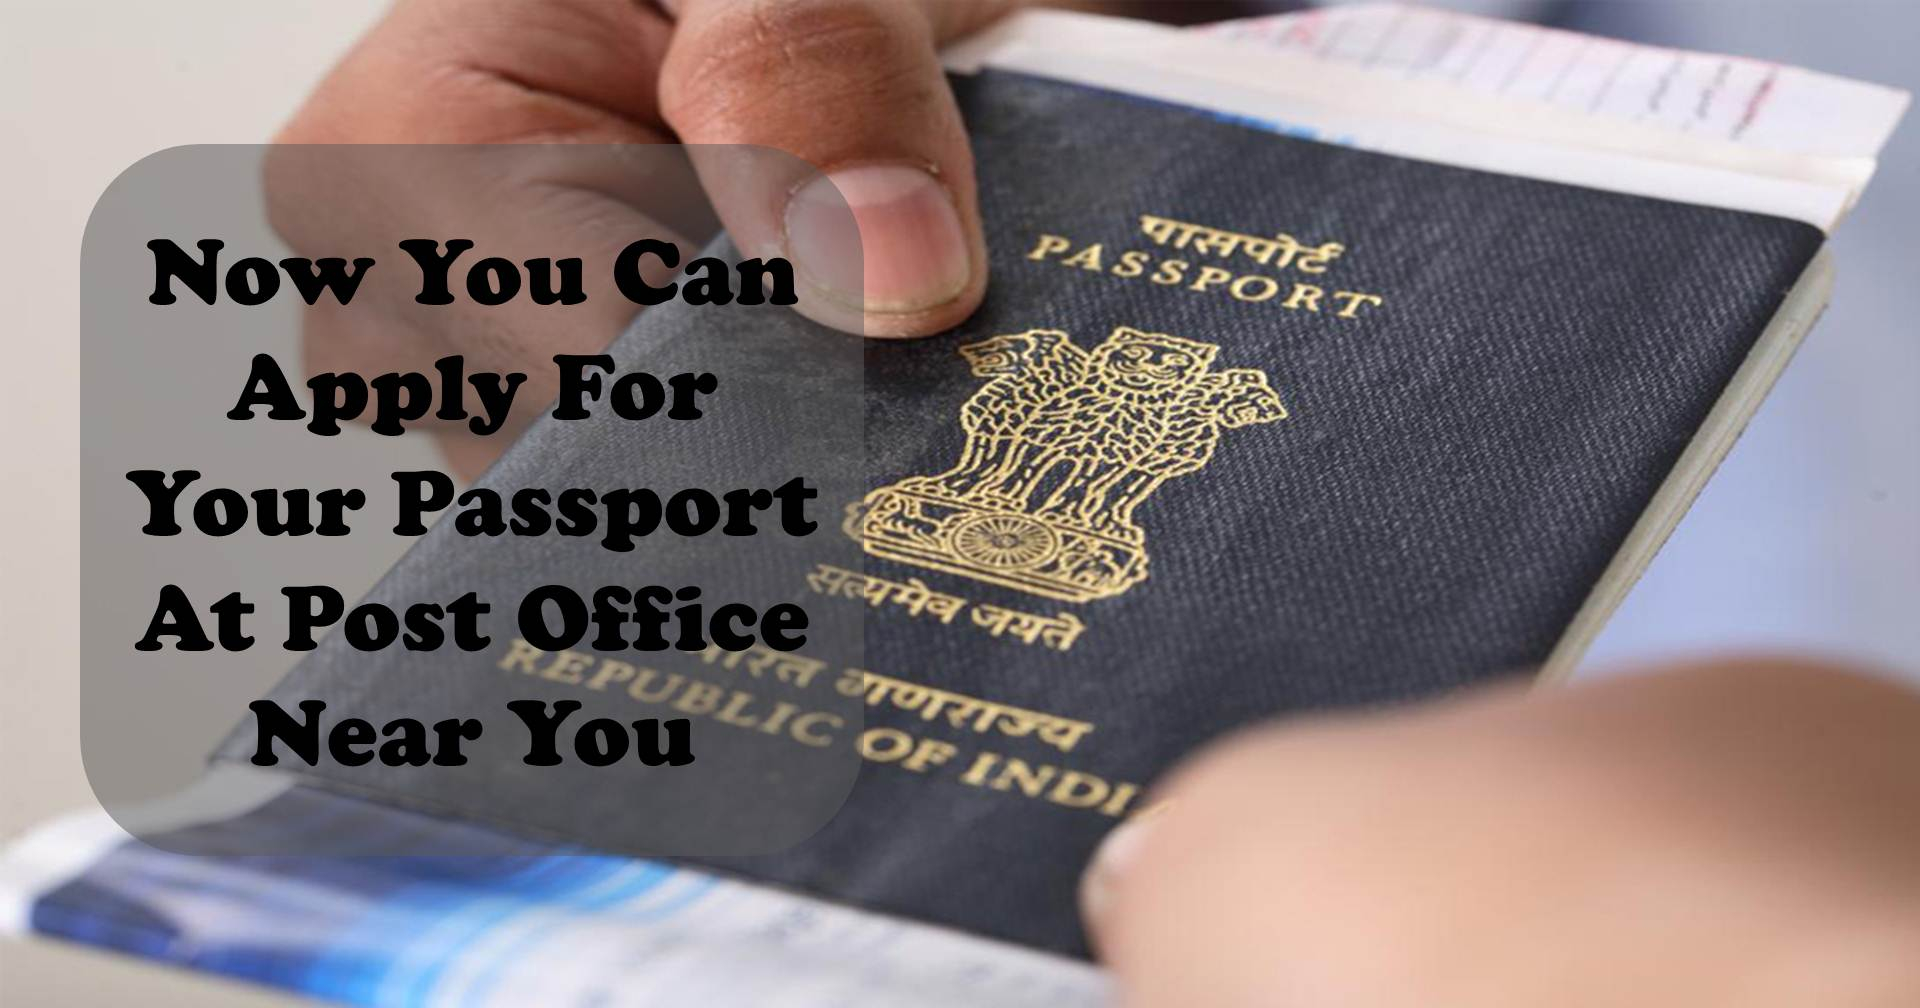 Now You Can Apply For Passport At Post Office Near You